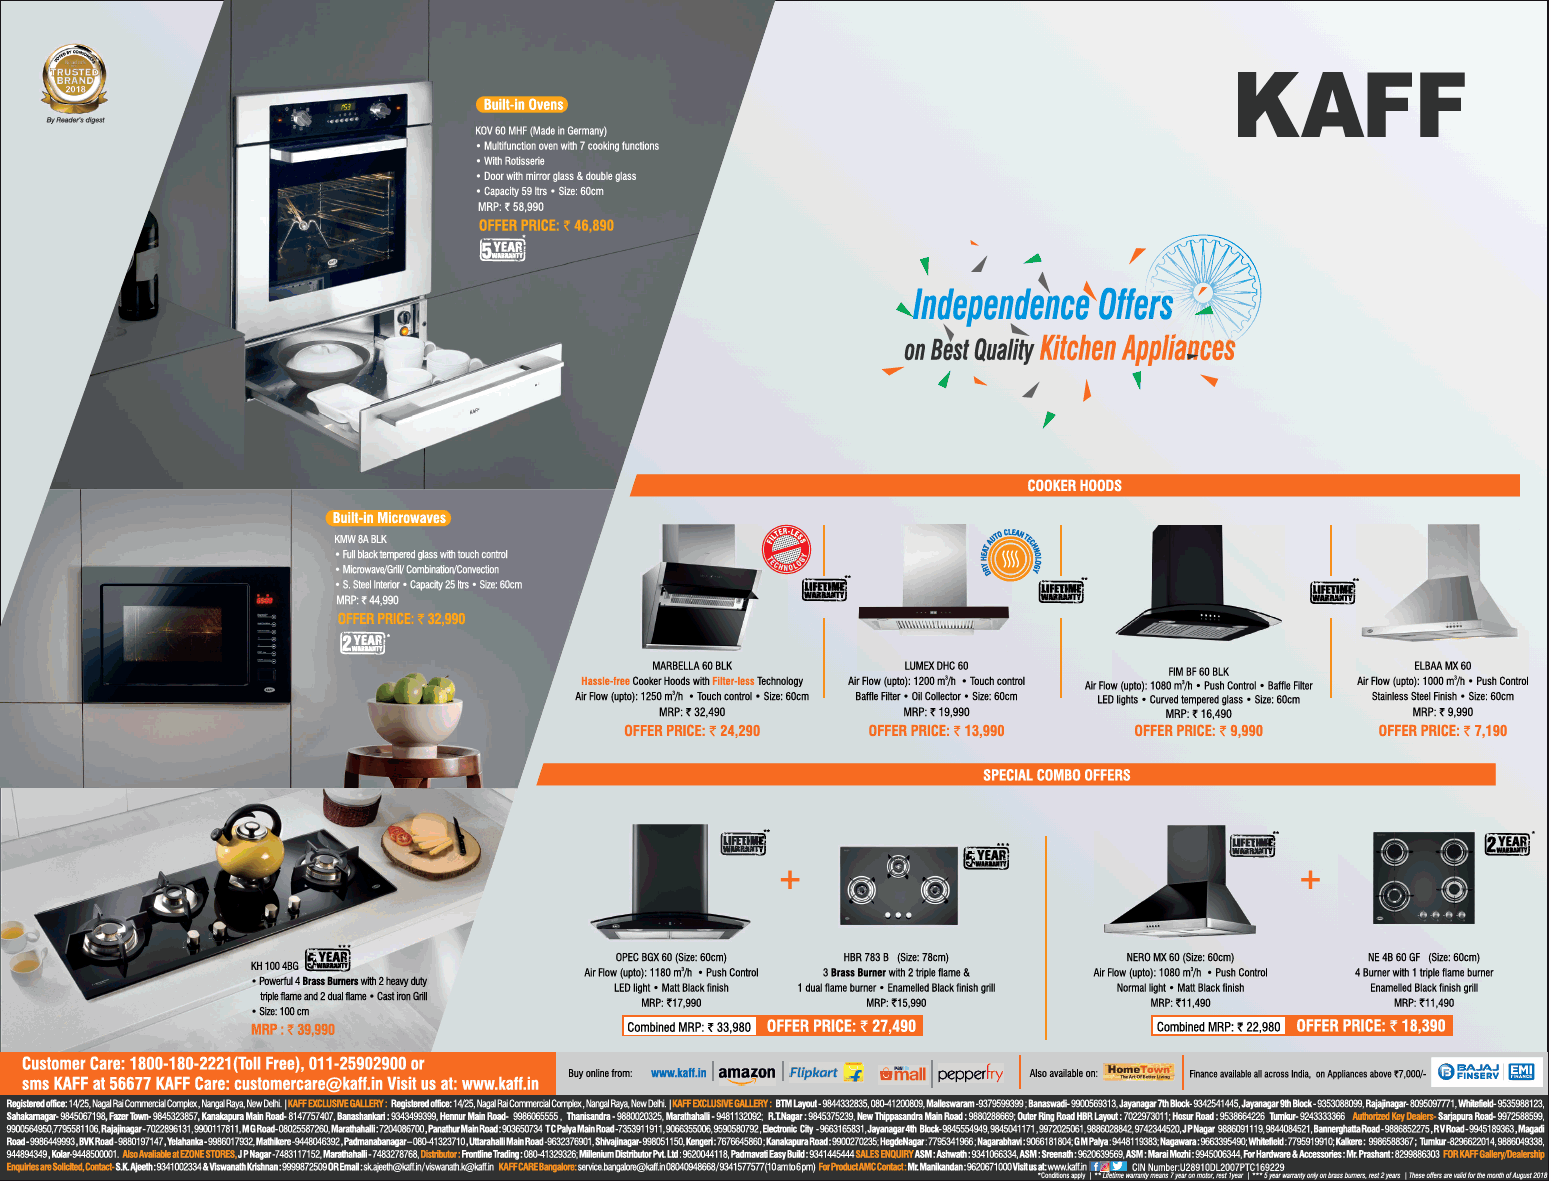 Kaff Appliances - Special Offers